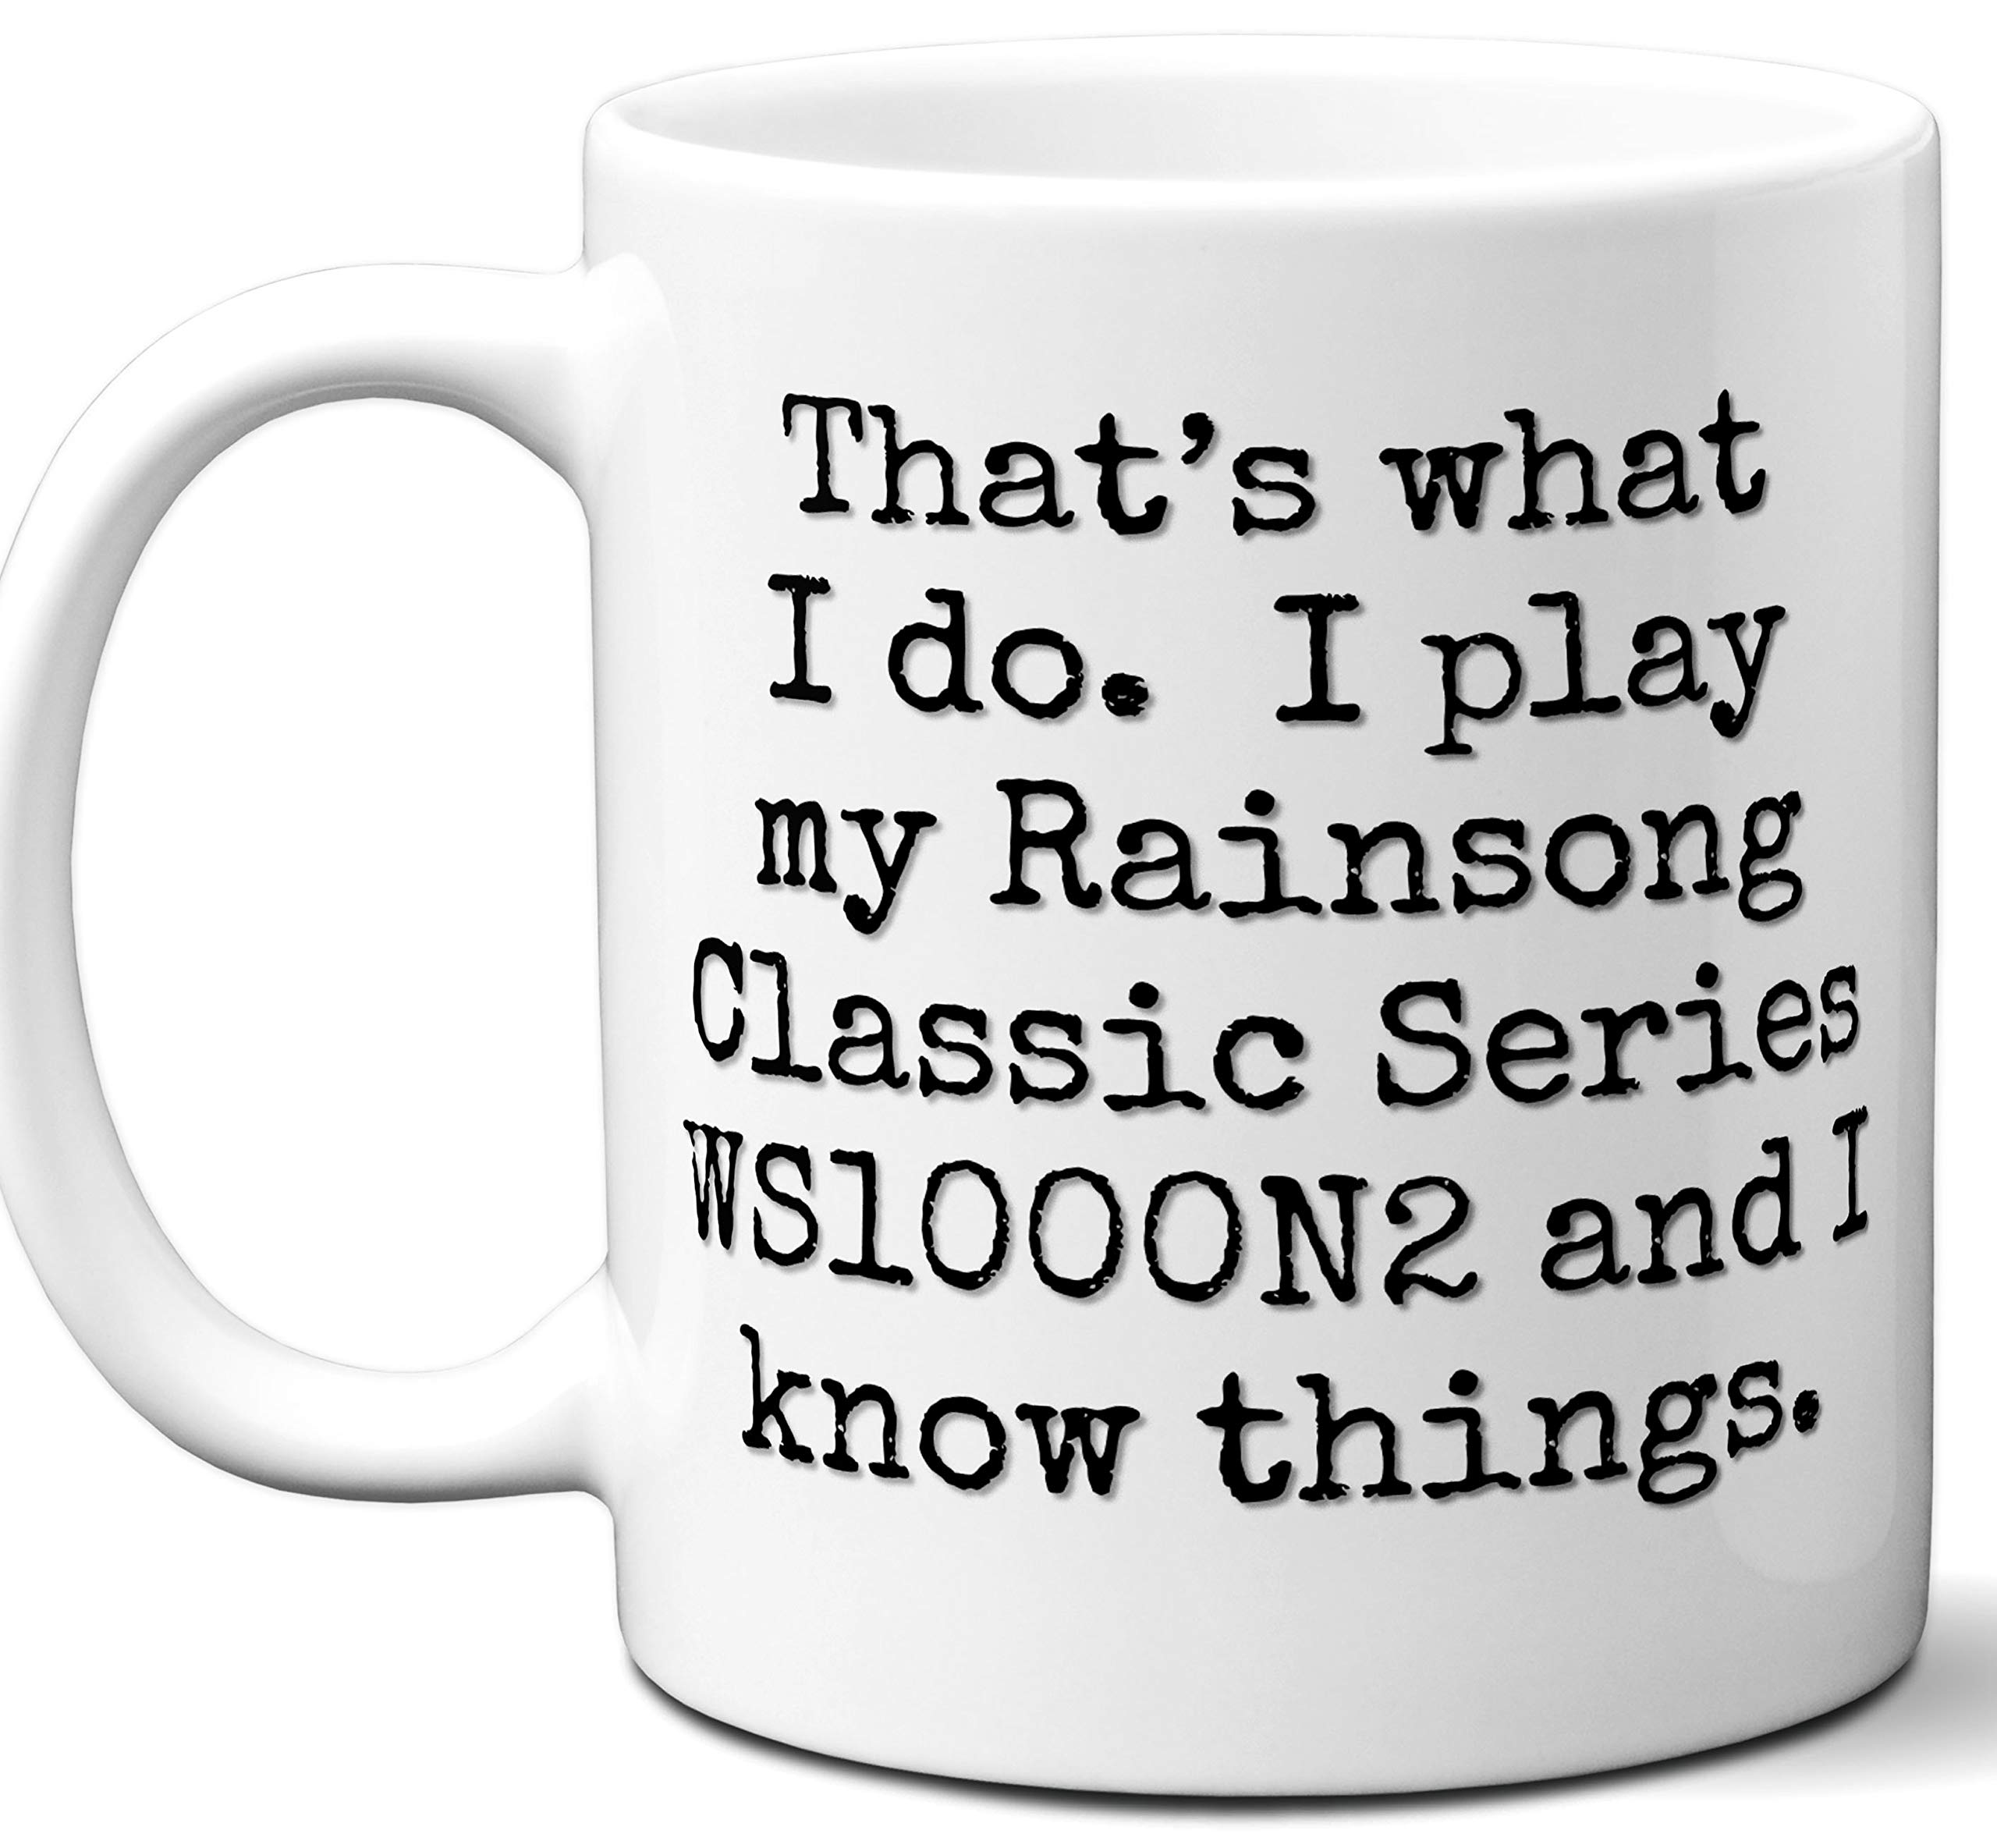 Guitar Gifts Mug. Rainsong Classic Series WS1000N2 Guitar Players Lover Accessories Music Teacher Lover Him Her Funny Dad Men Women Card Pick Musician Acoustic Unique by Ombura